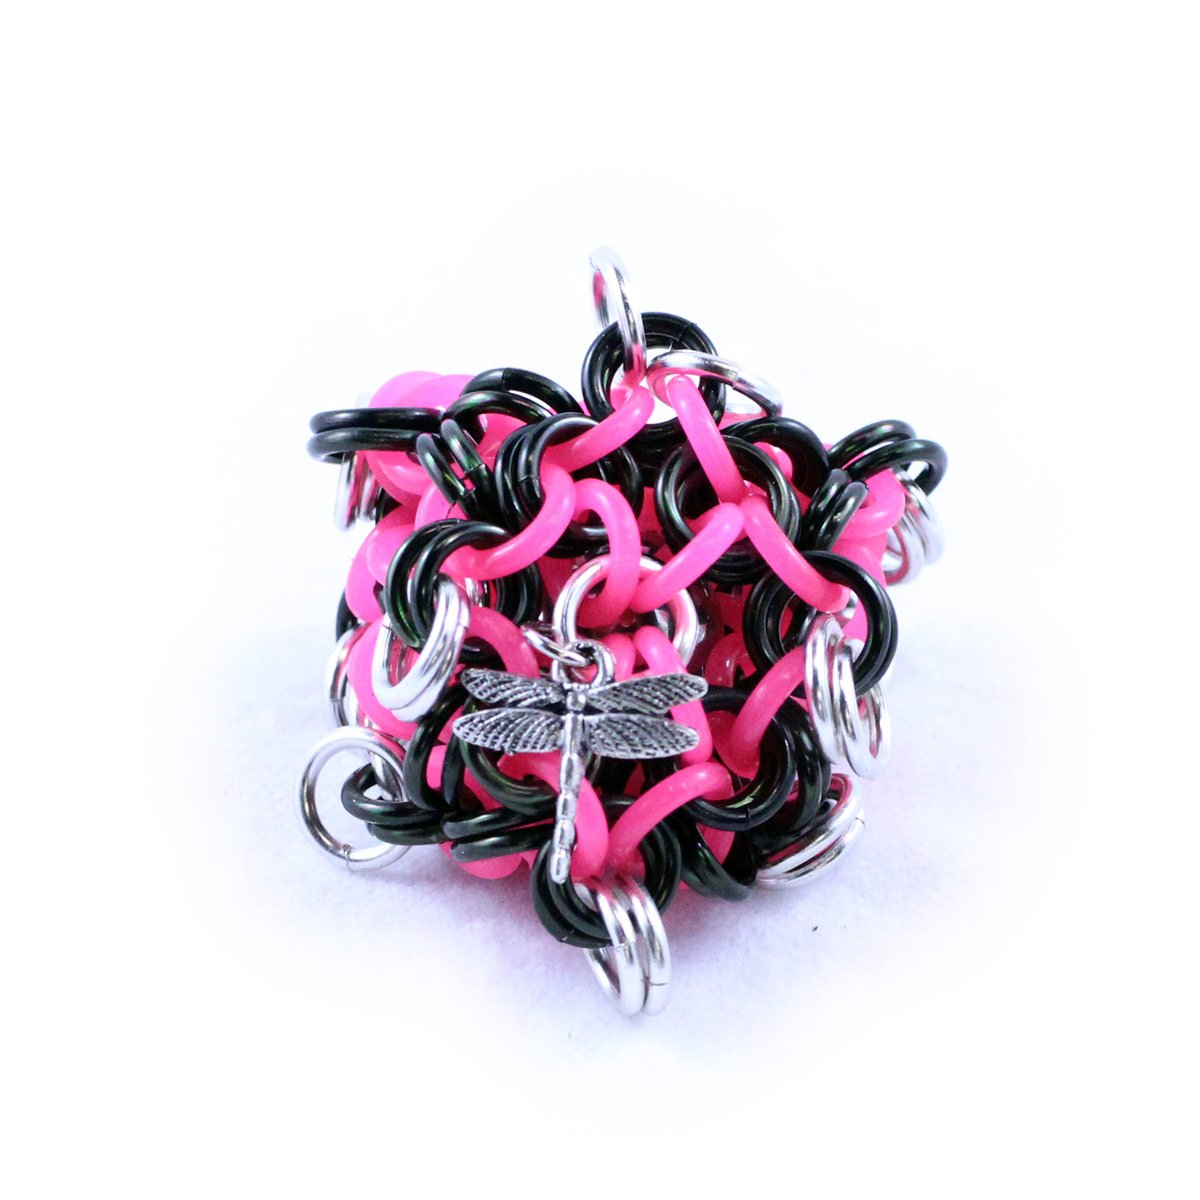 Dragonfly Footbags Black, Hot Pink and Silver 22 Gram Chainmail Footbag (Hacky Sack)